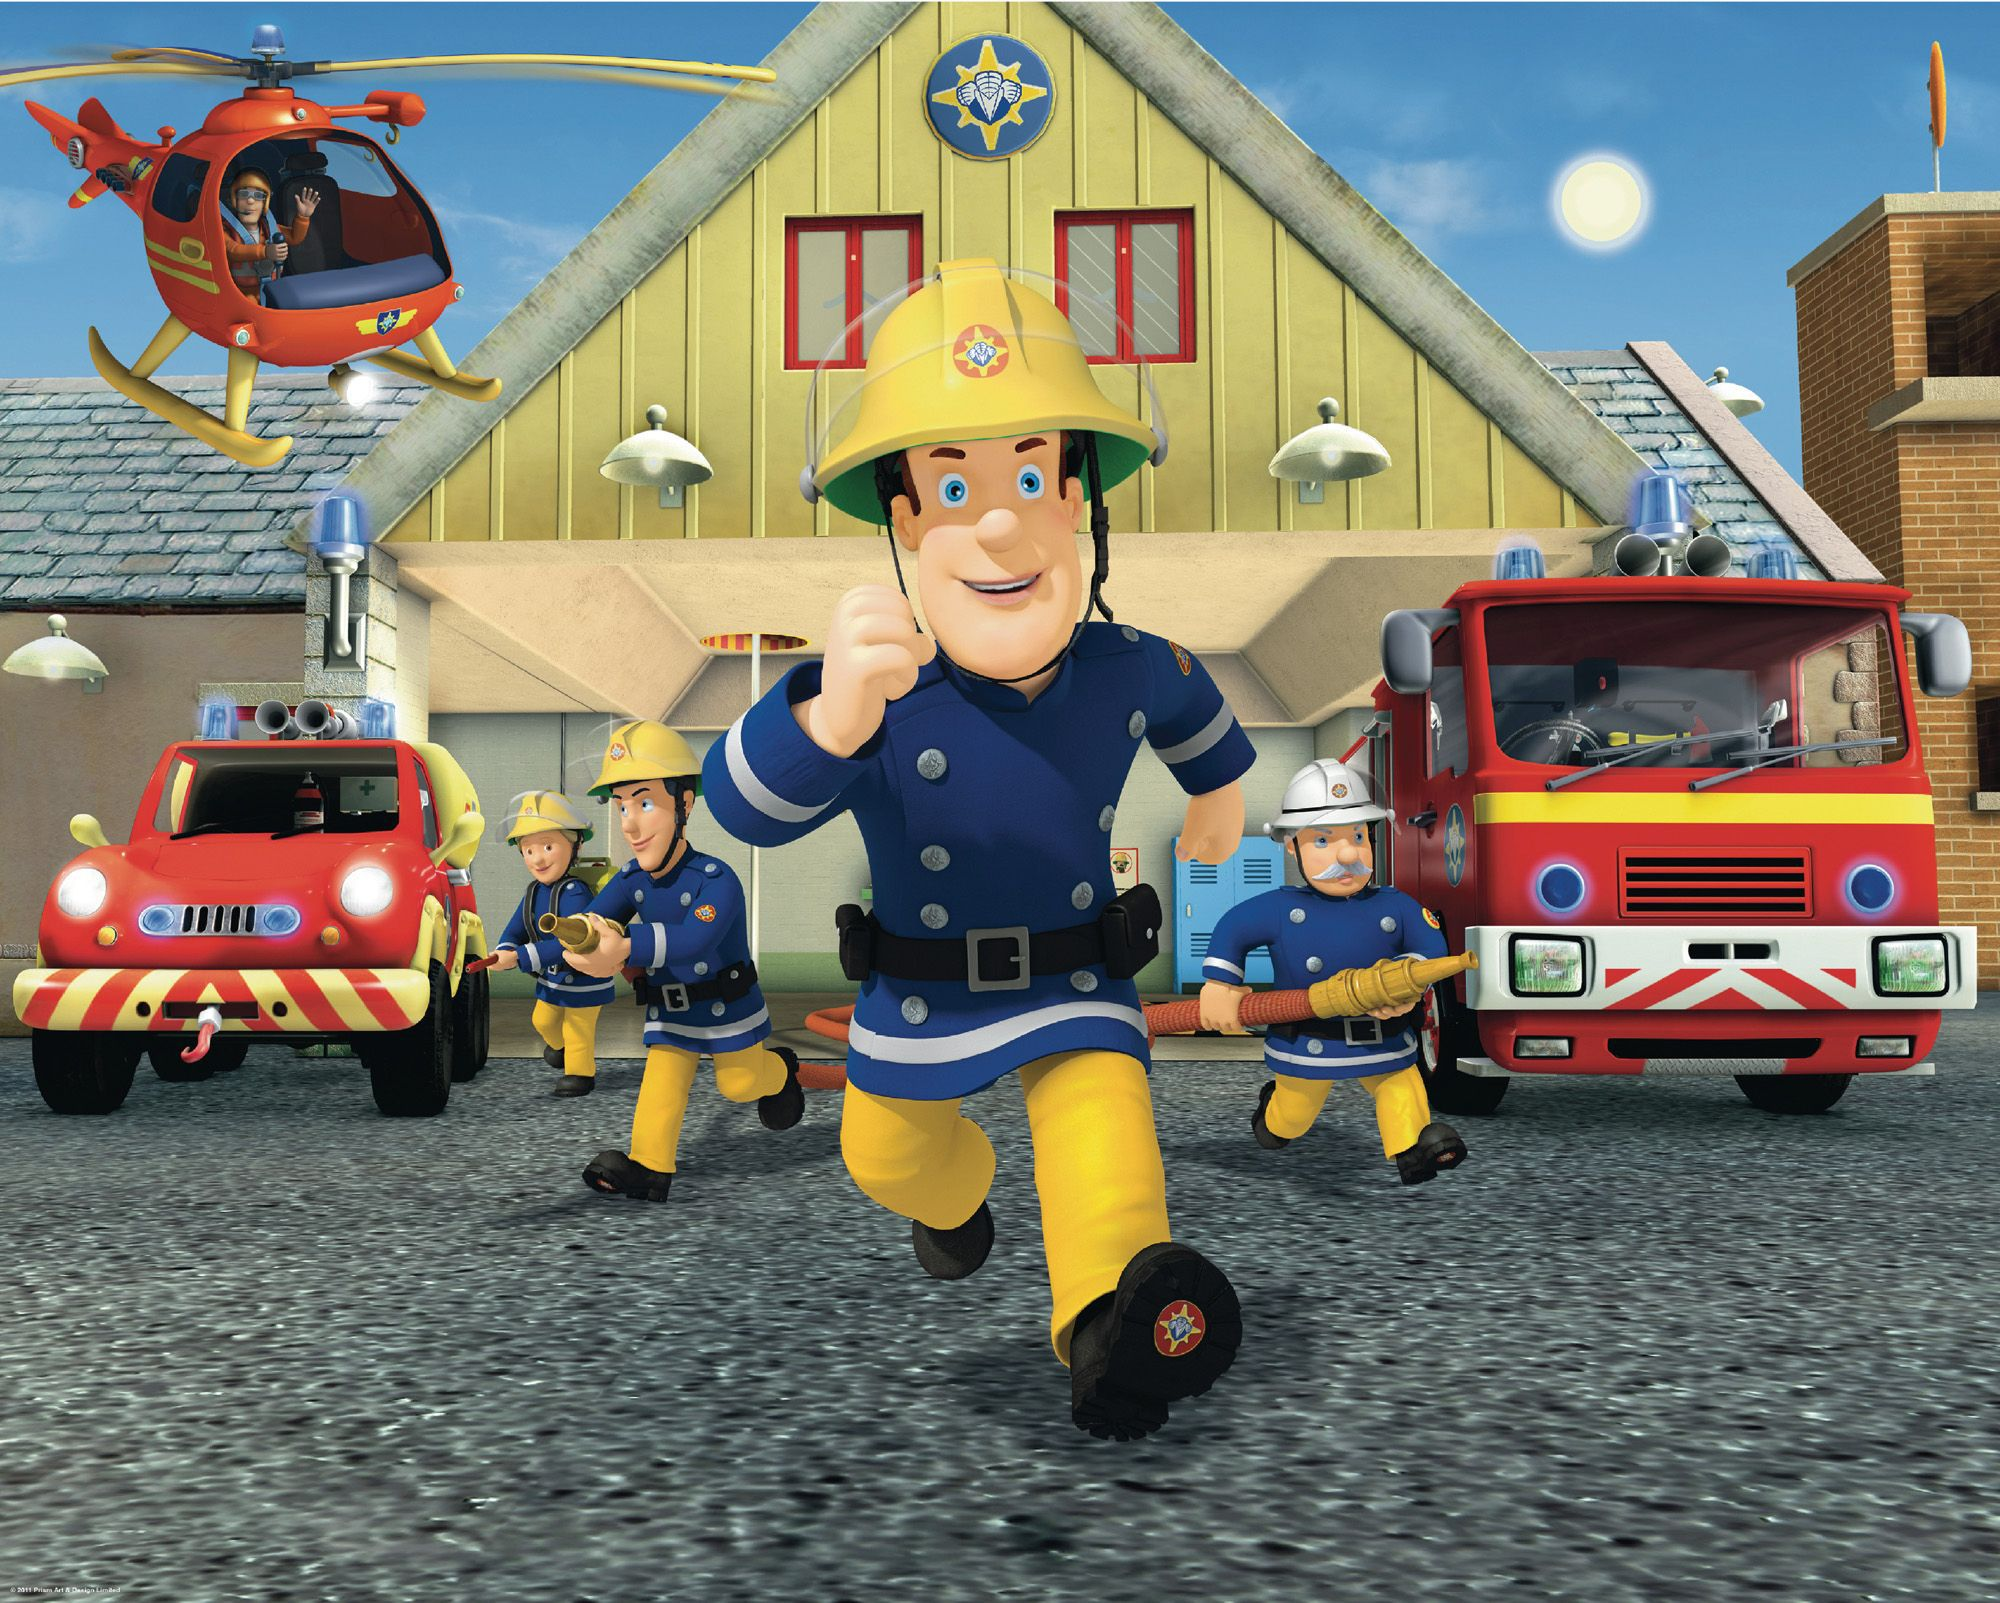 Paint Wall Mural Walltastic 12 Panel Fireman Sam Wall Mural Departments